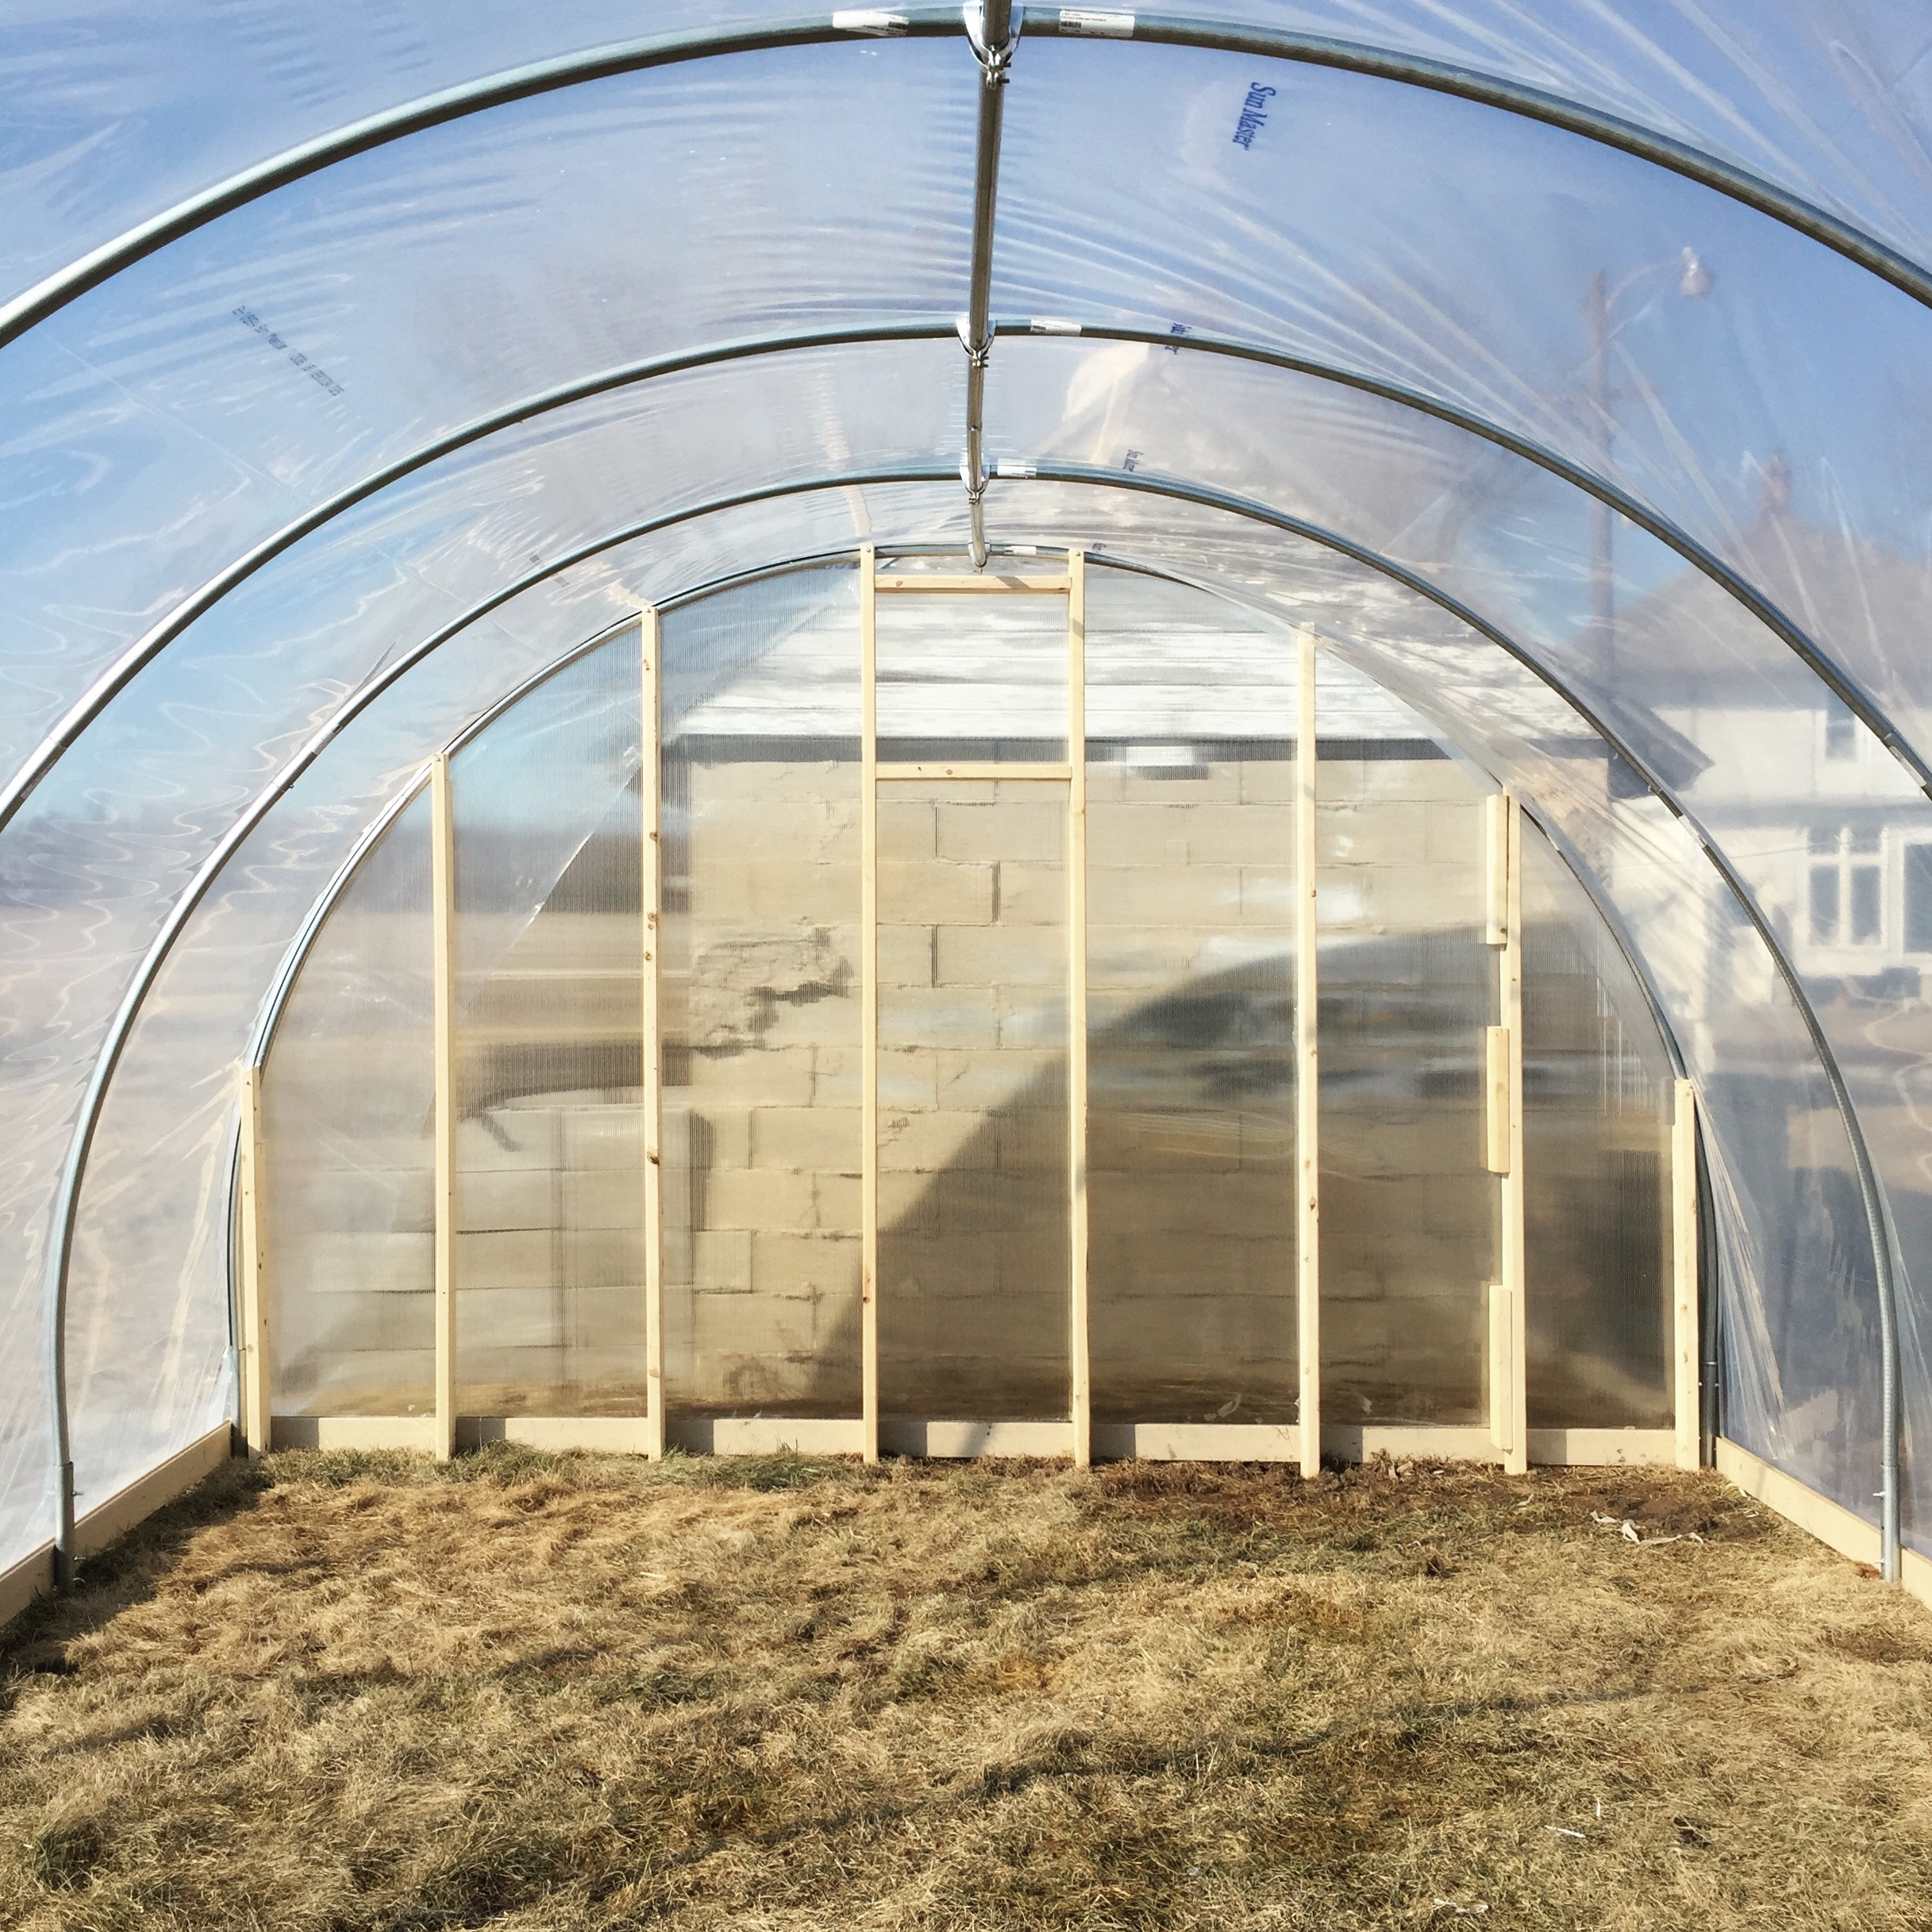 Our basic hoophouse structure.